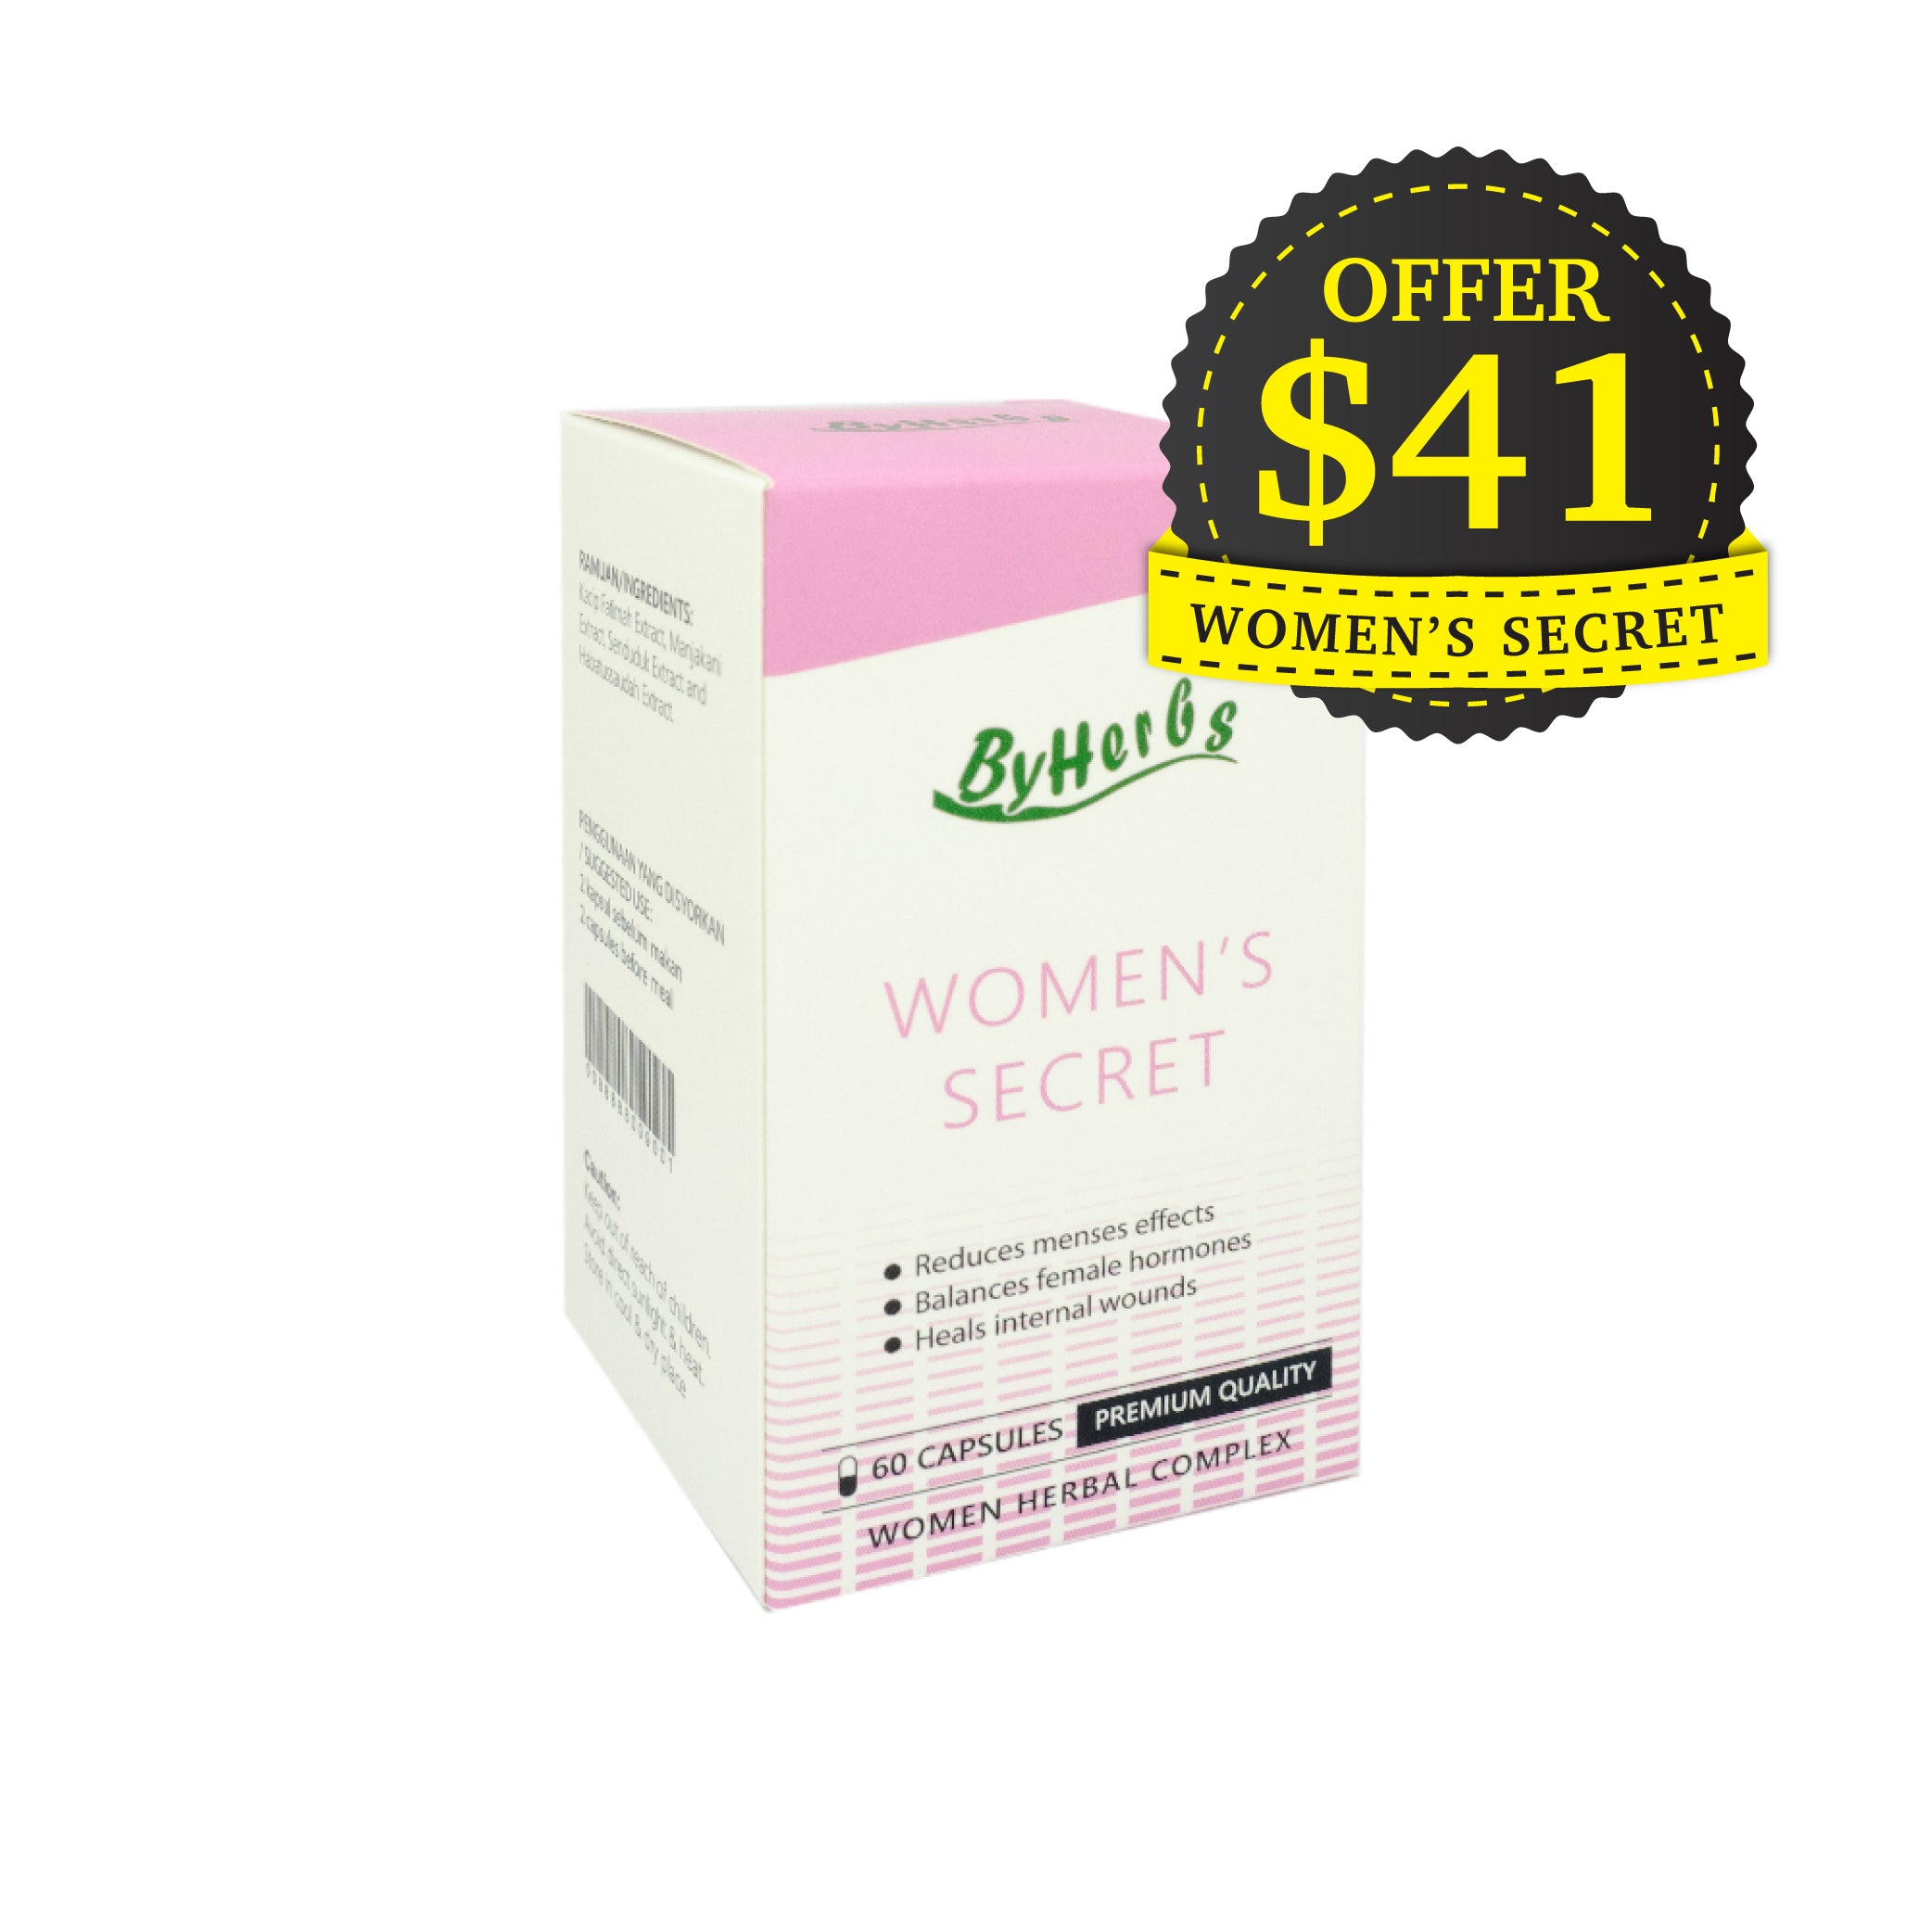 ByHerbs, Women's Secret, 350mg X 60 capsules